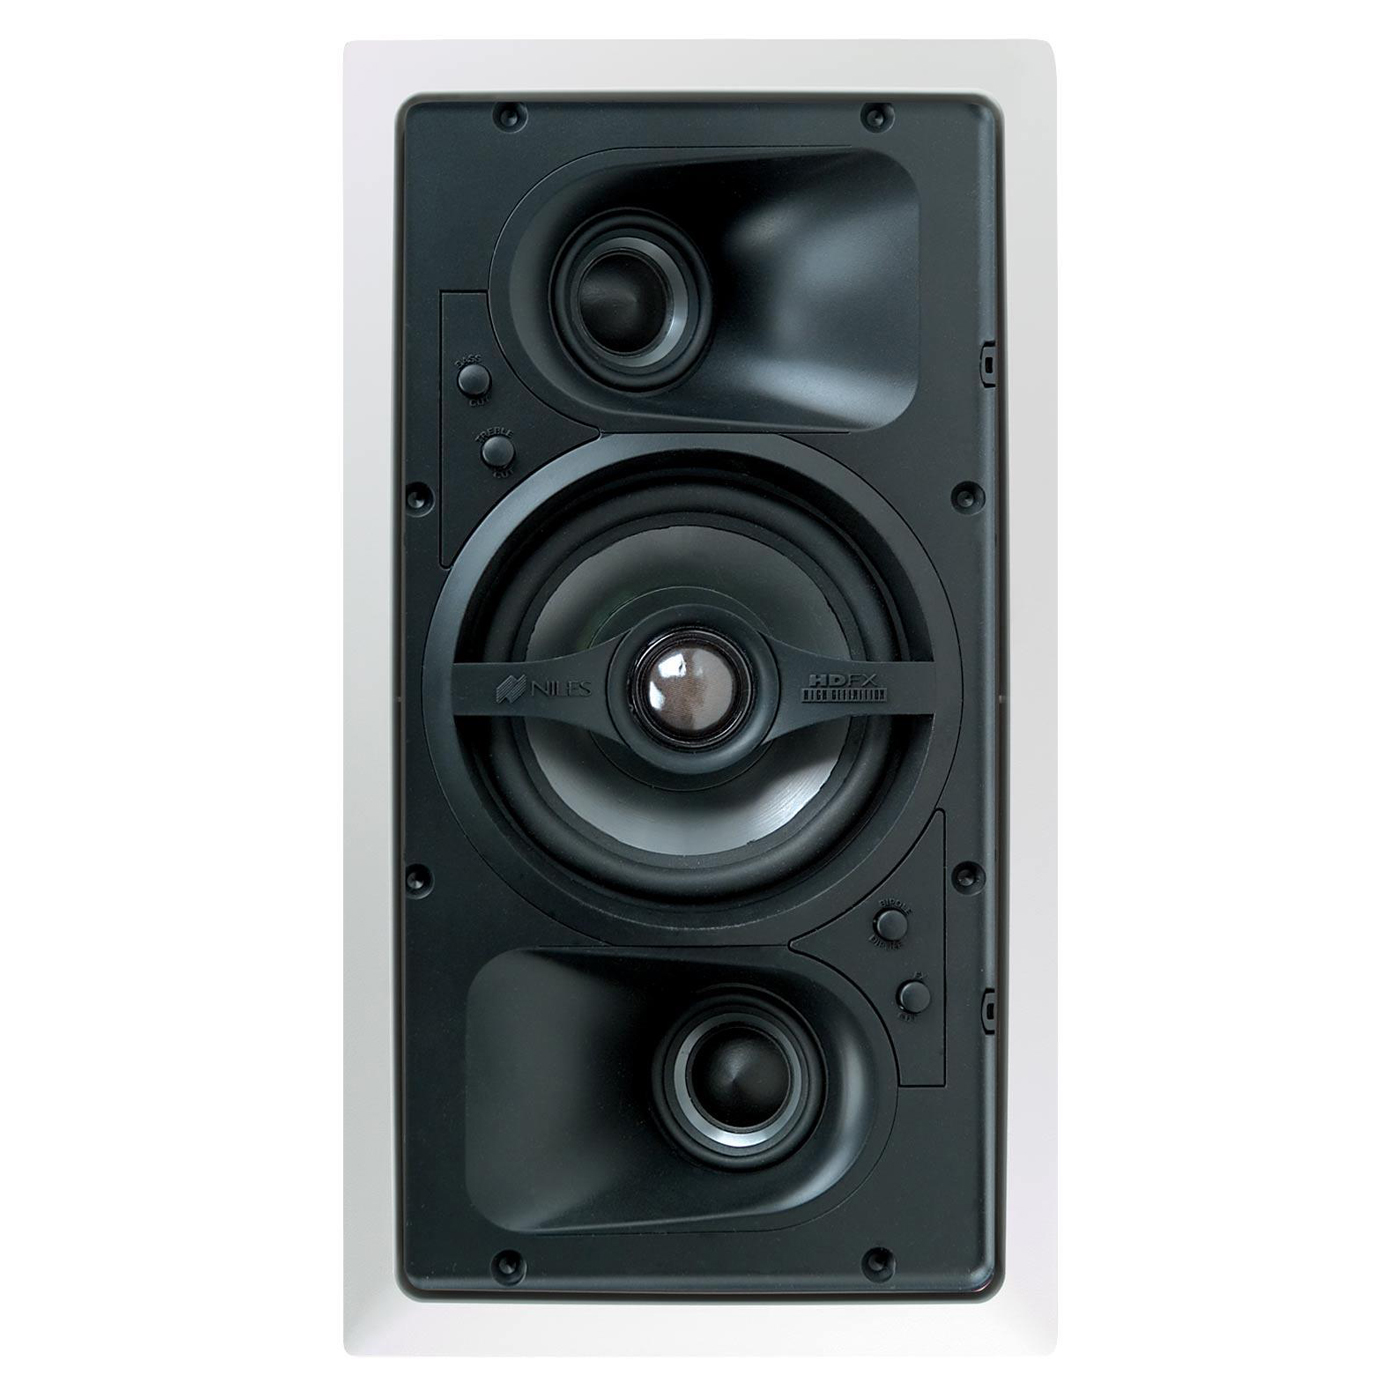 Niles HDFX High Definition In-Wall Loudspeaker - Pair (White)